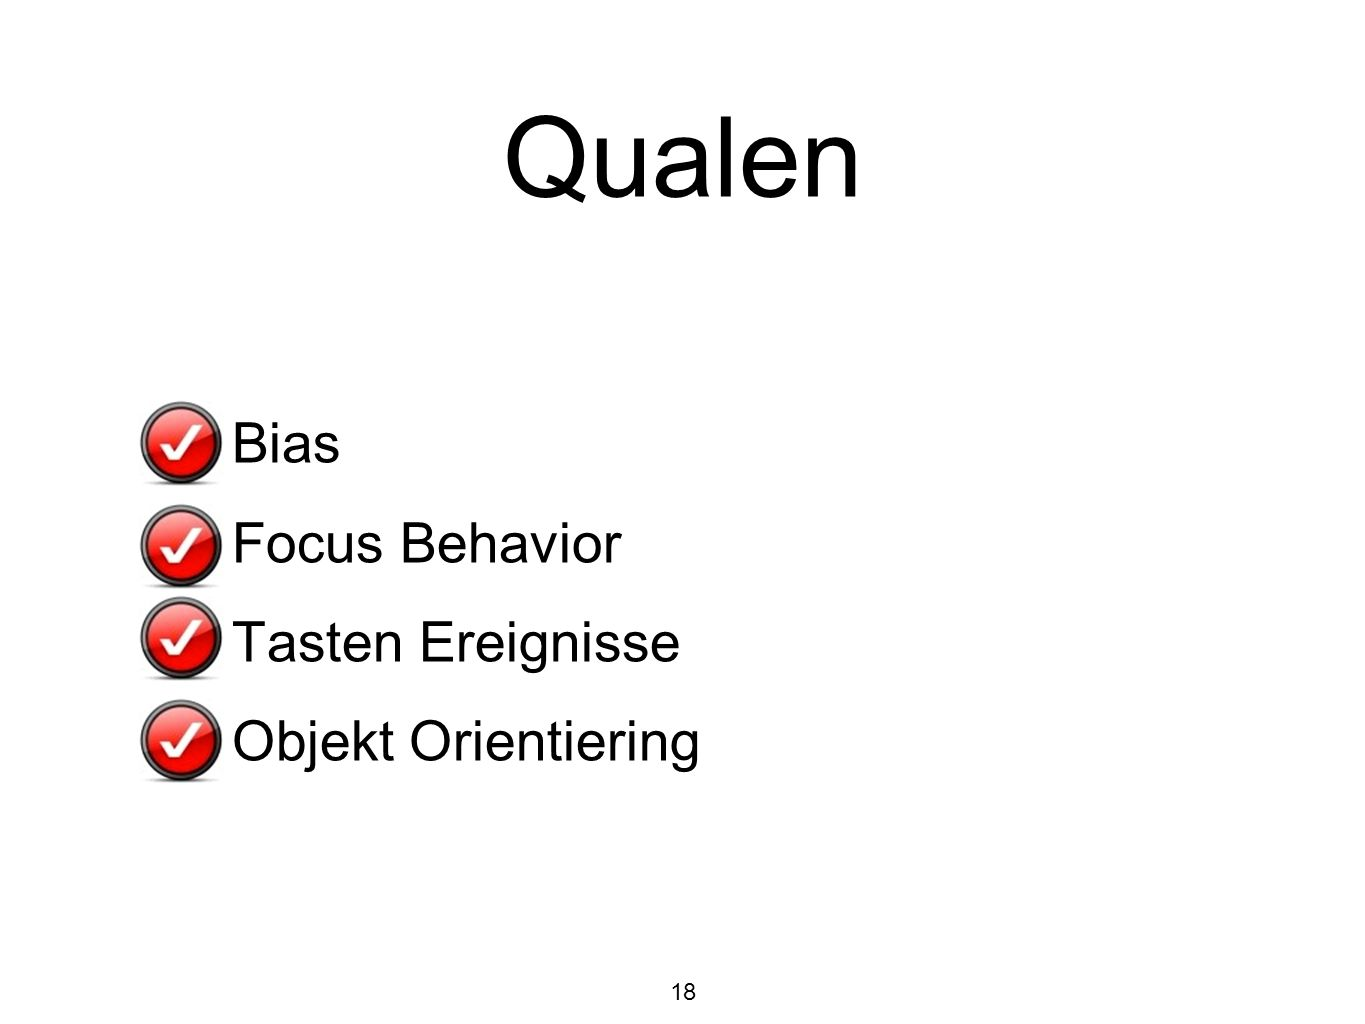 Qualen Bias Focus Behavior Tasten Ereignisse Objekt Orientiering